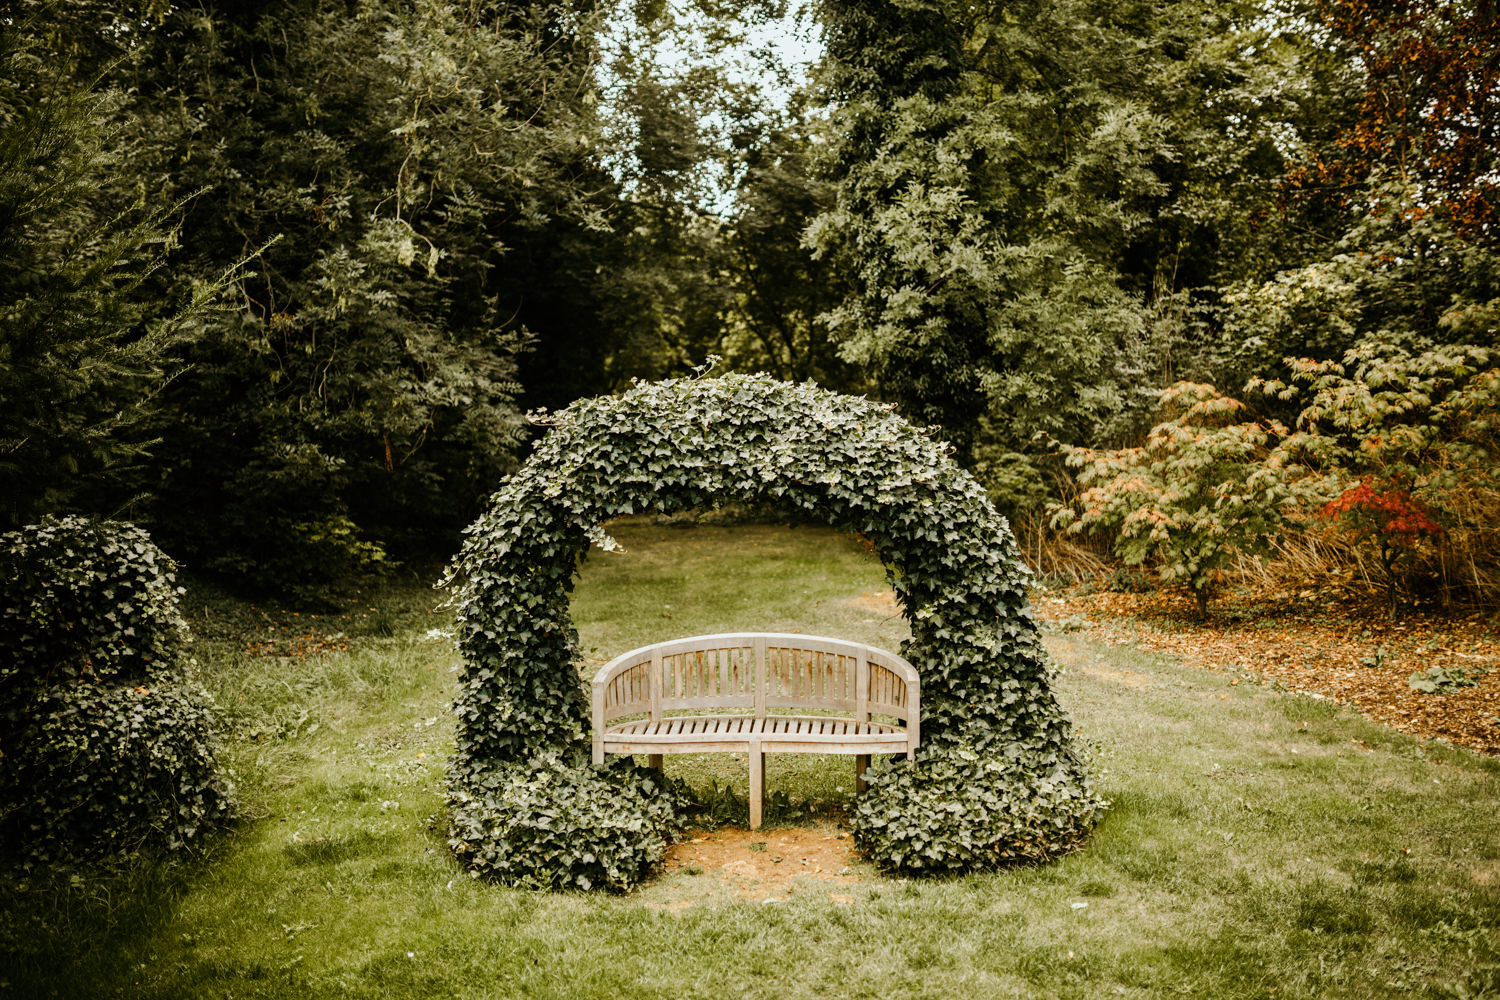 beautiful bench in the gardens of Cripps barn with greenery around